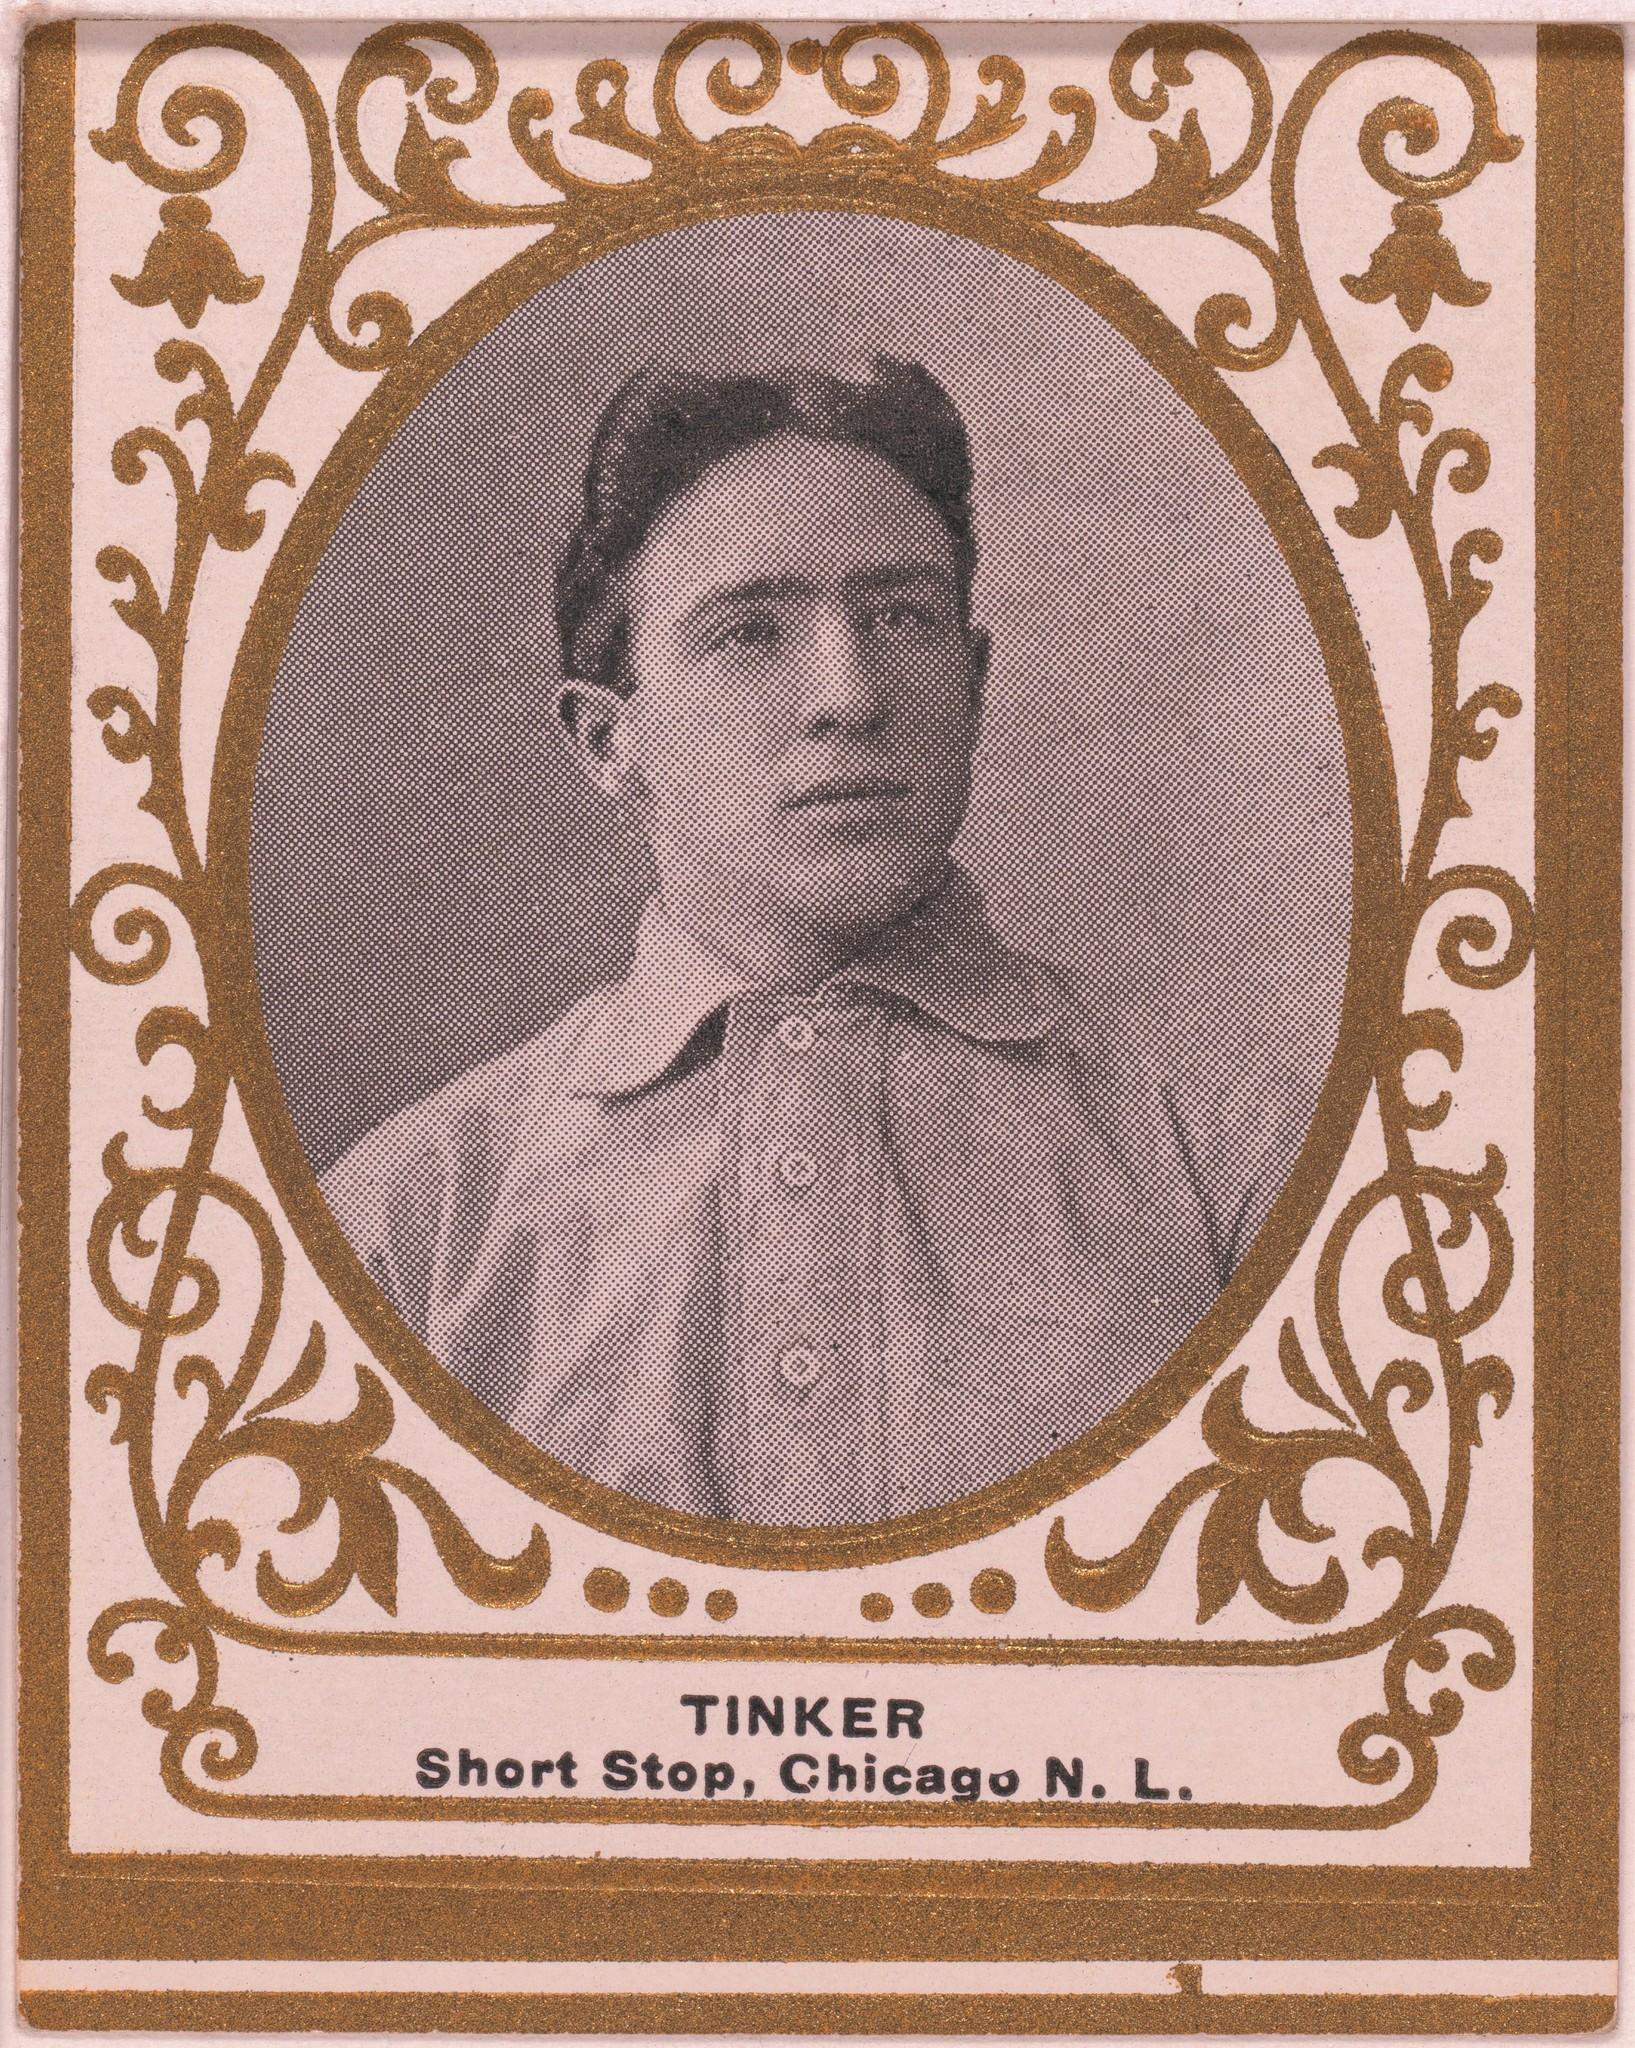 Joe Tinker, for whom Orlando's baseball field is named, appears on a 1909 baseball card during his days with the Chicago Cubs. He later moved to Orlando to manage the city's baseball team.